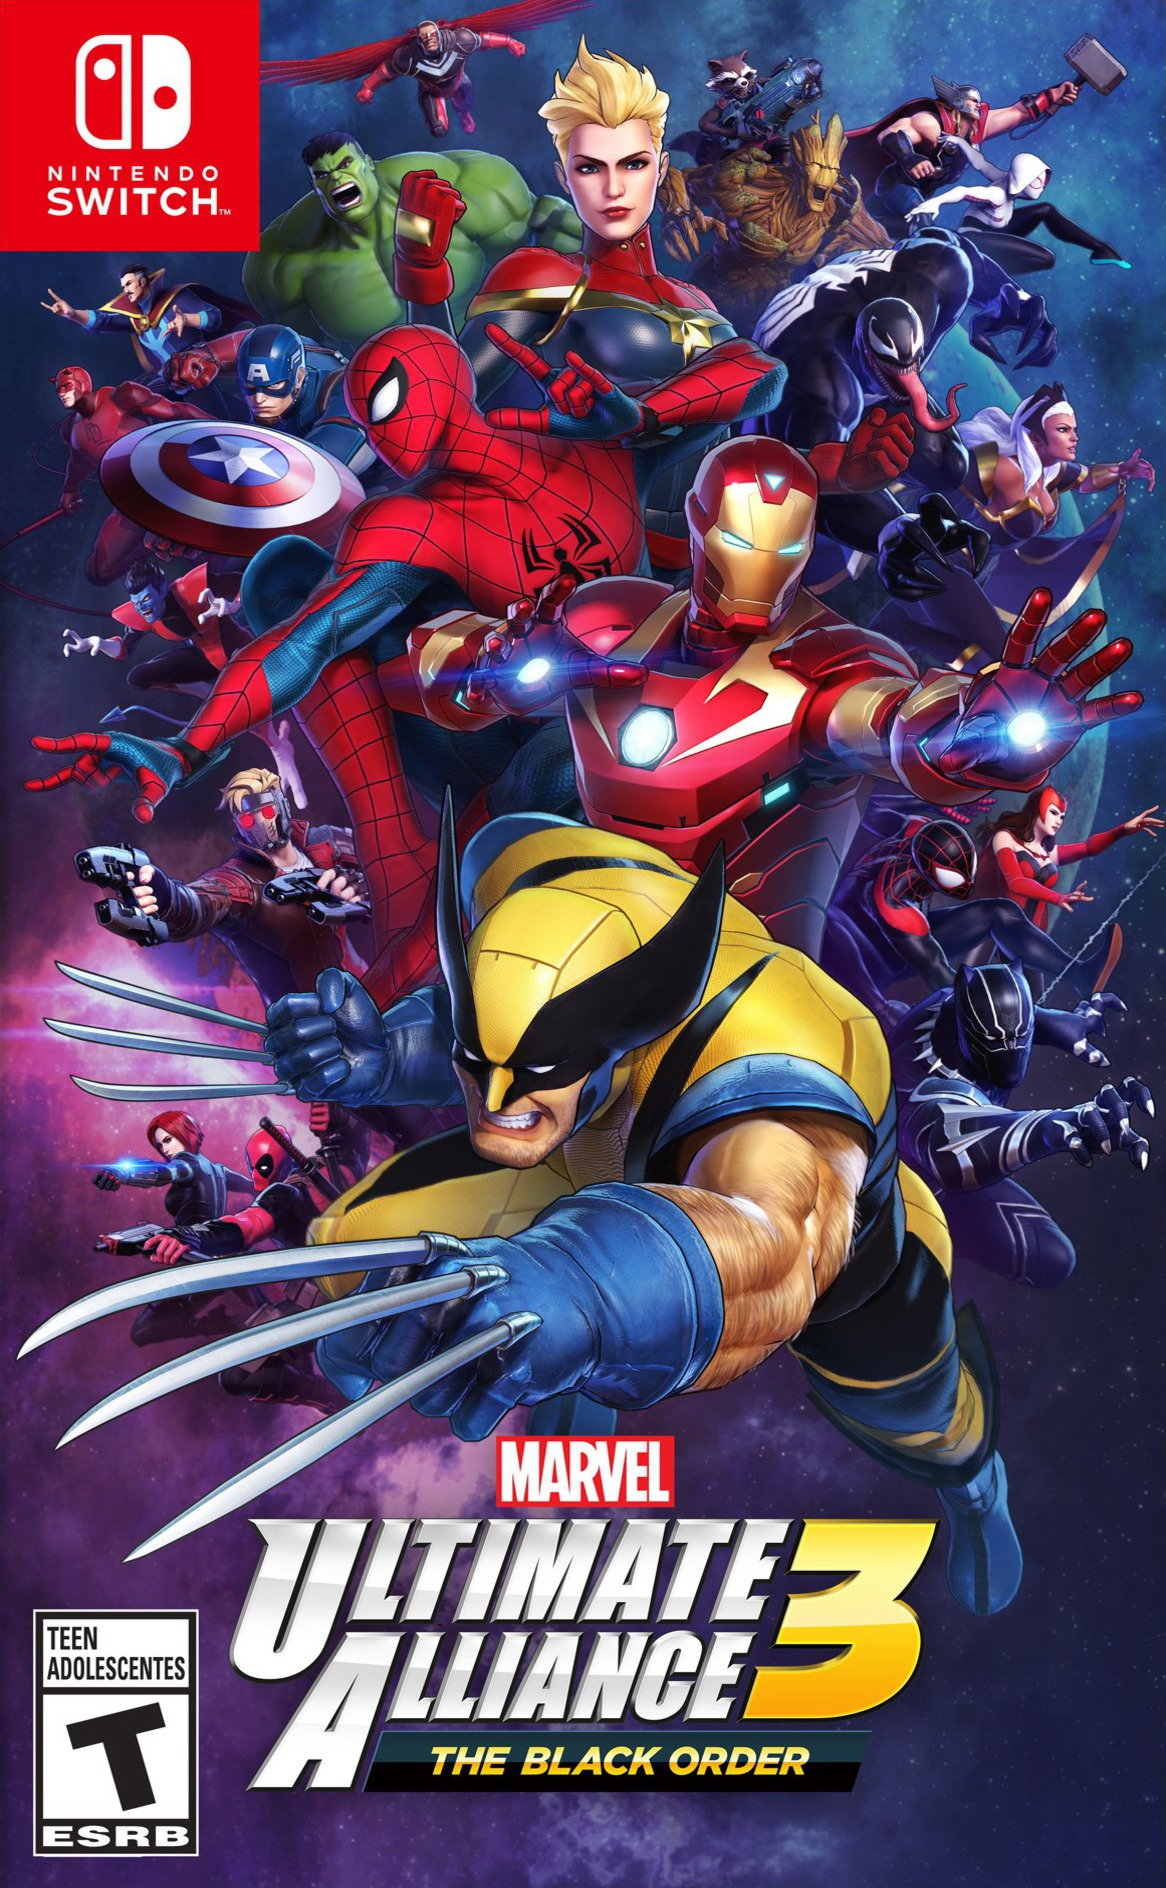 Marvel Ultimate Alliance 3 The Black Order  Switch coverHQ (APY2A)